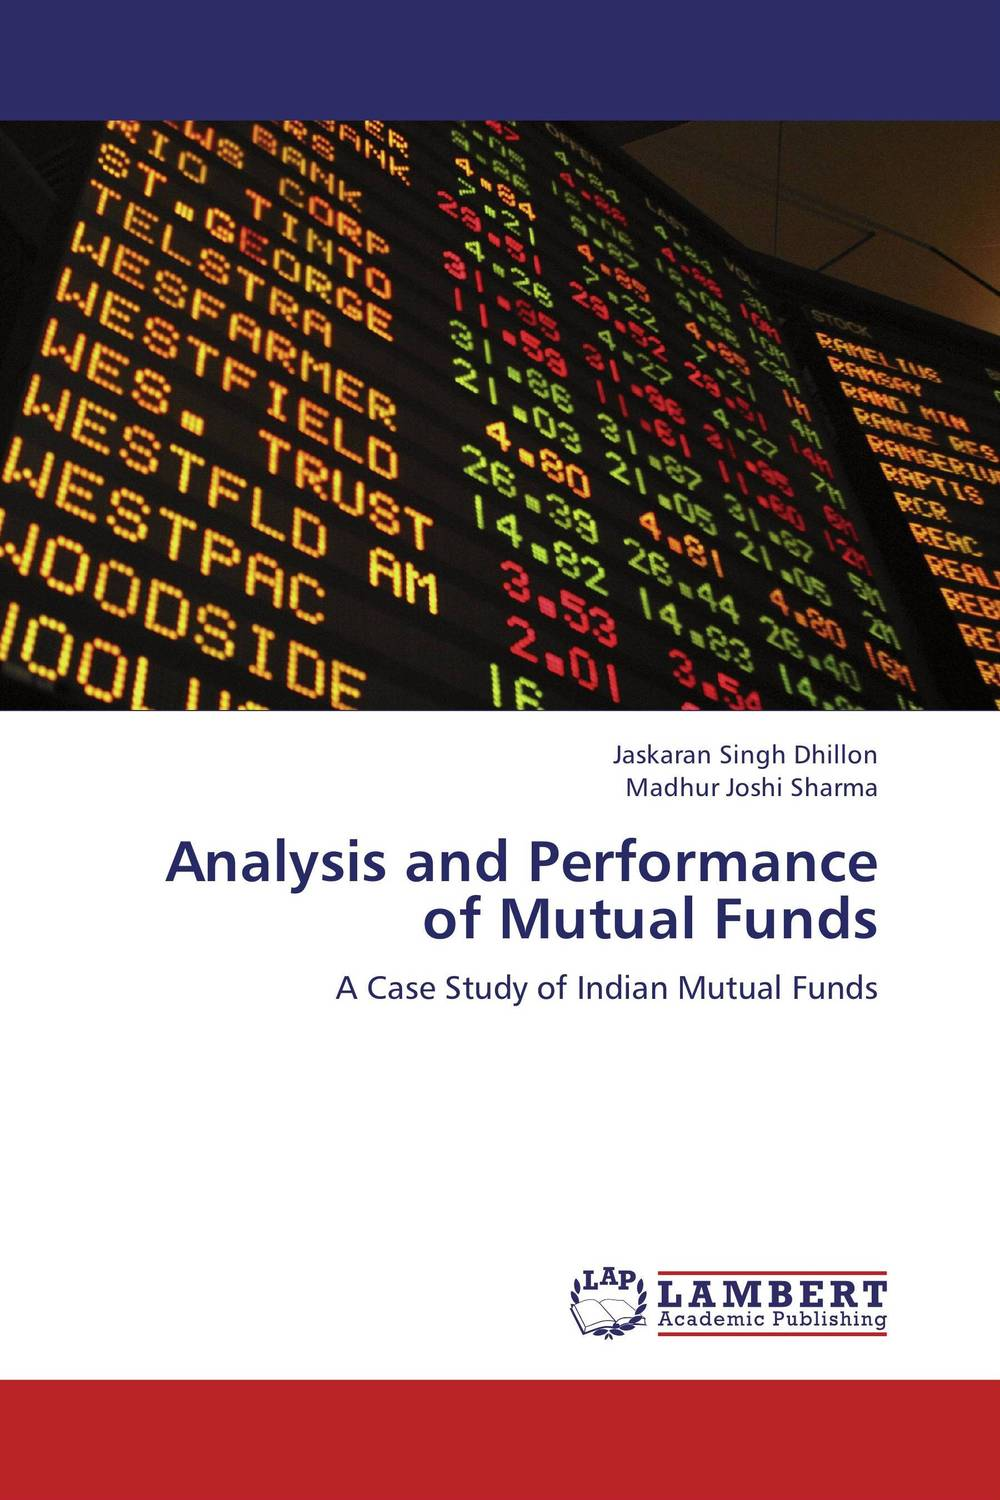 Analysis and Performance of Mutual Funds john haslem a mutual funds portfolio structures analysis management and stewardship